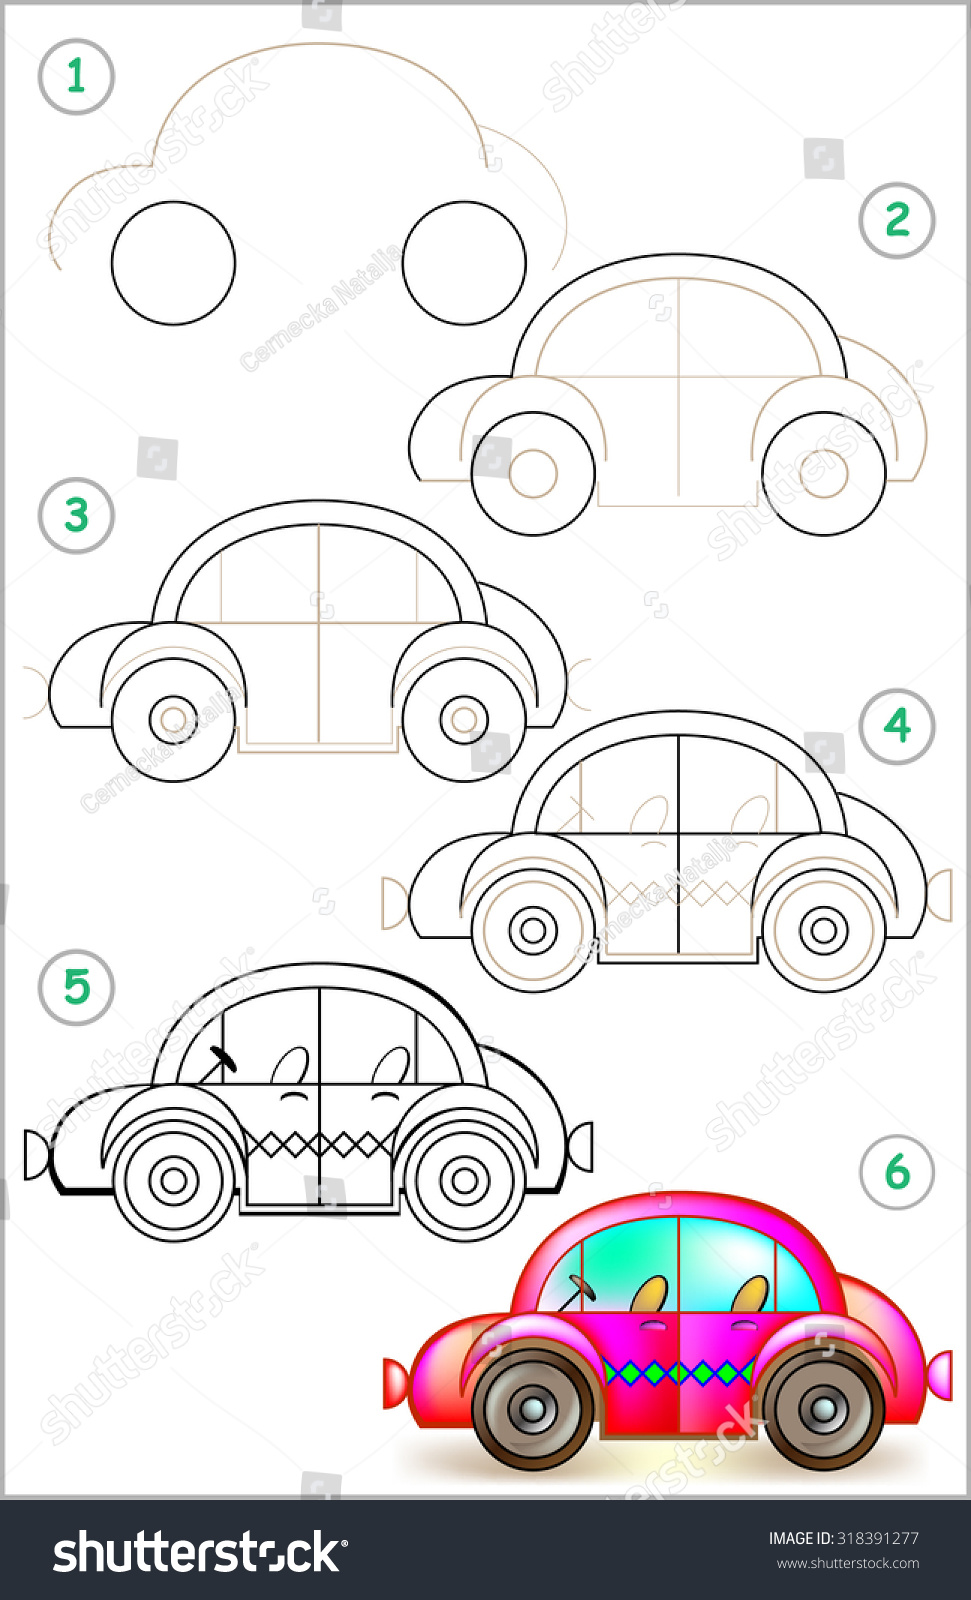 page shows how to learn step by step to draw car developing children skills for